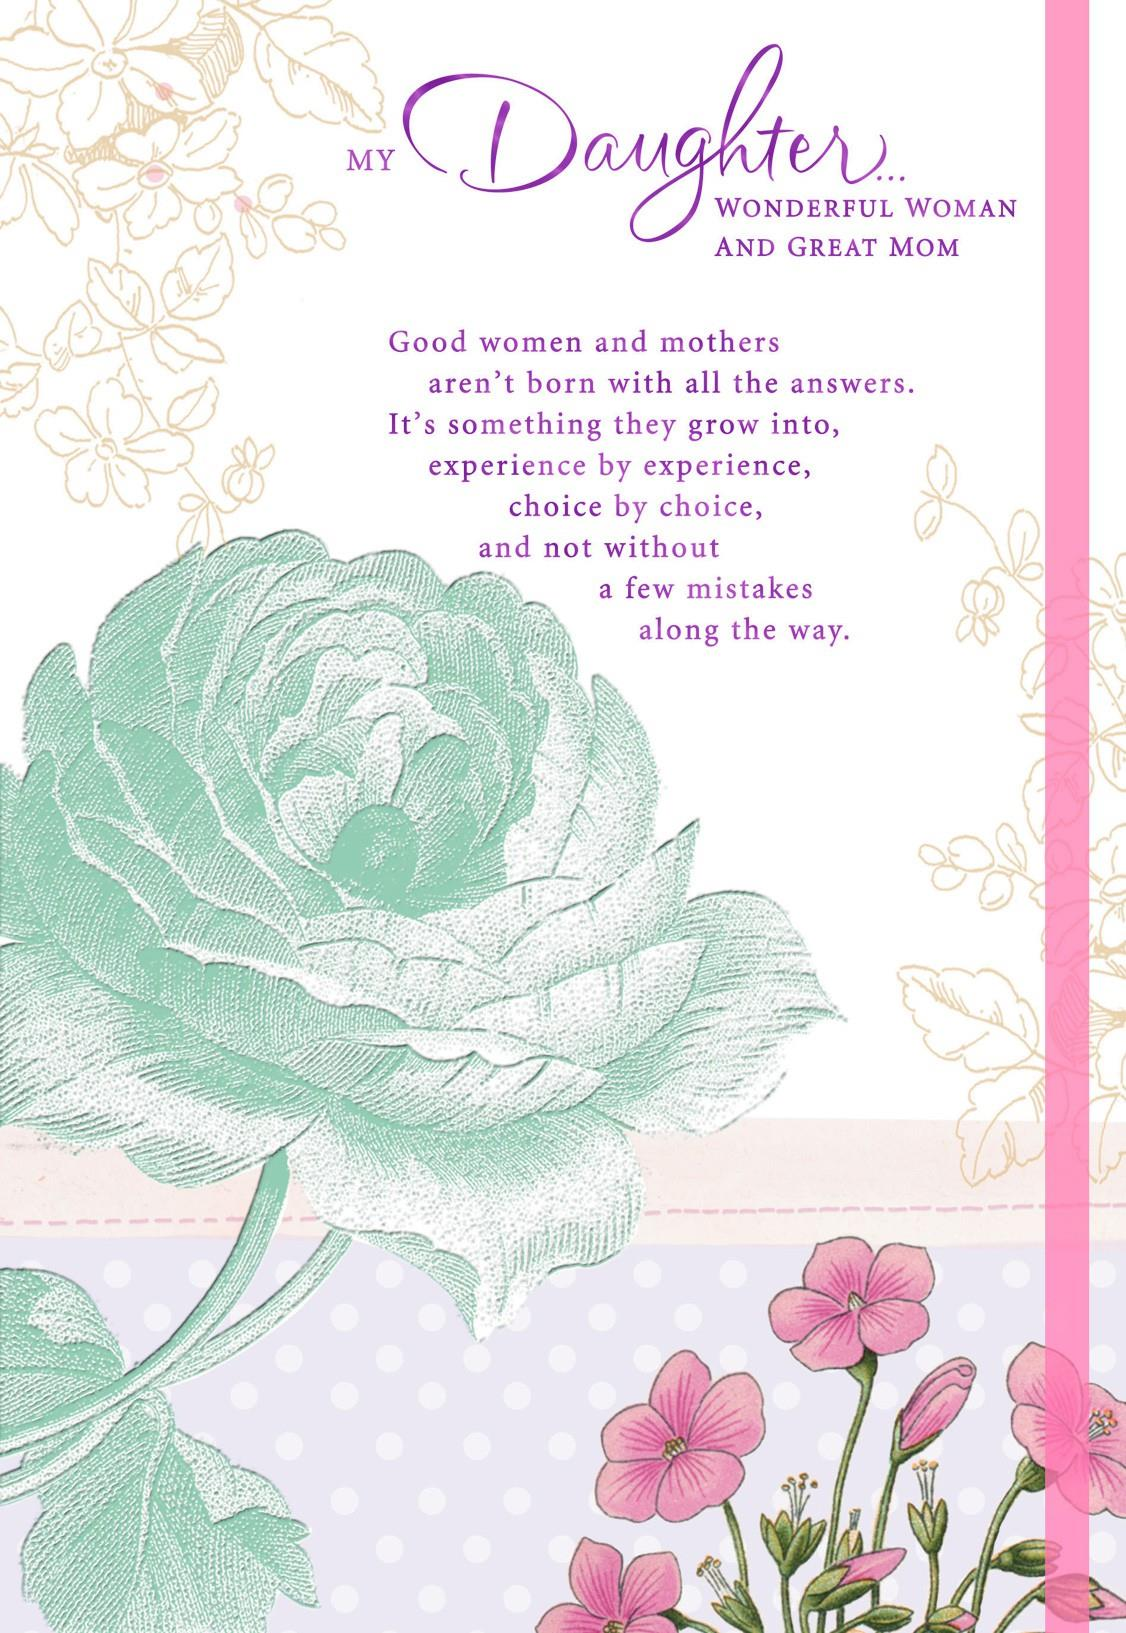 Youre a remarkable mother mothers day card for daughter youre a remarkable mother mothers day card for daughter kristyandbryce Images